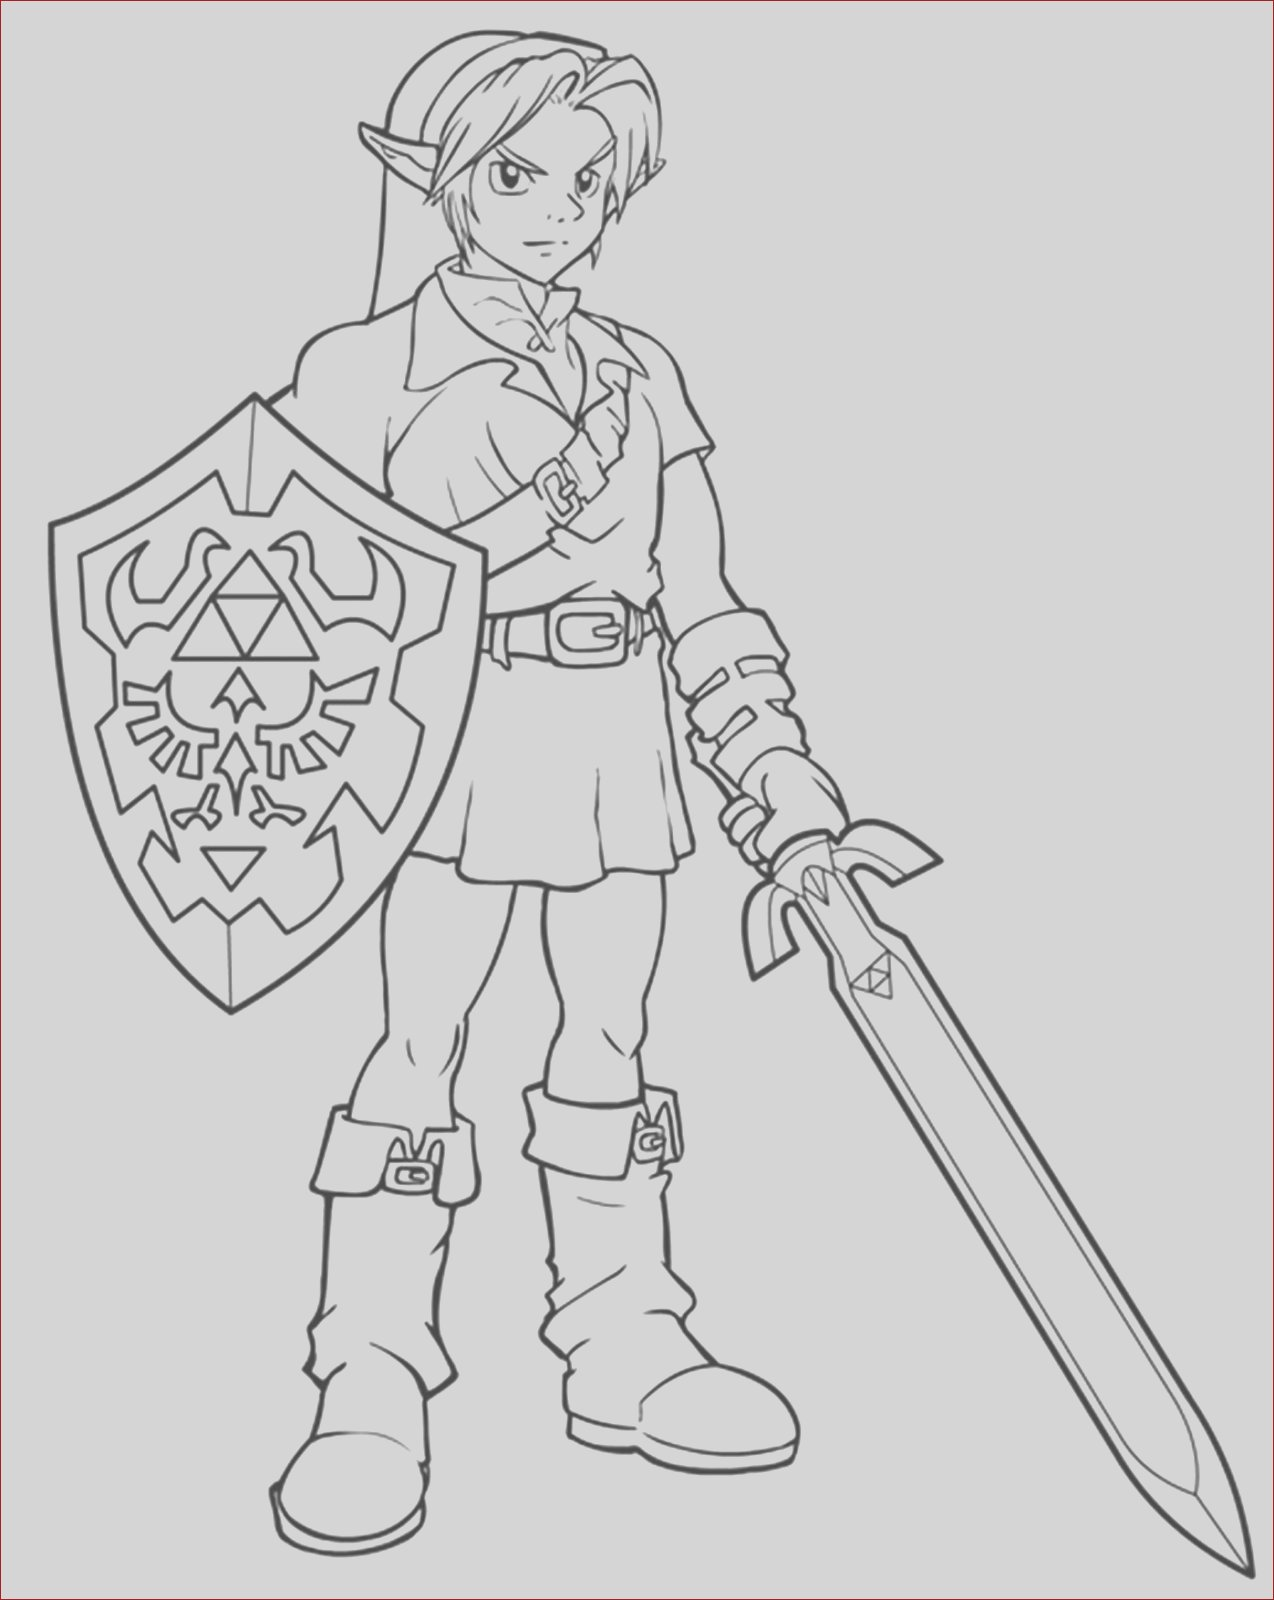 more adult video game colouring pages